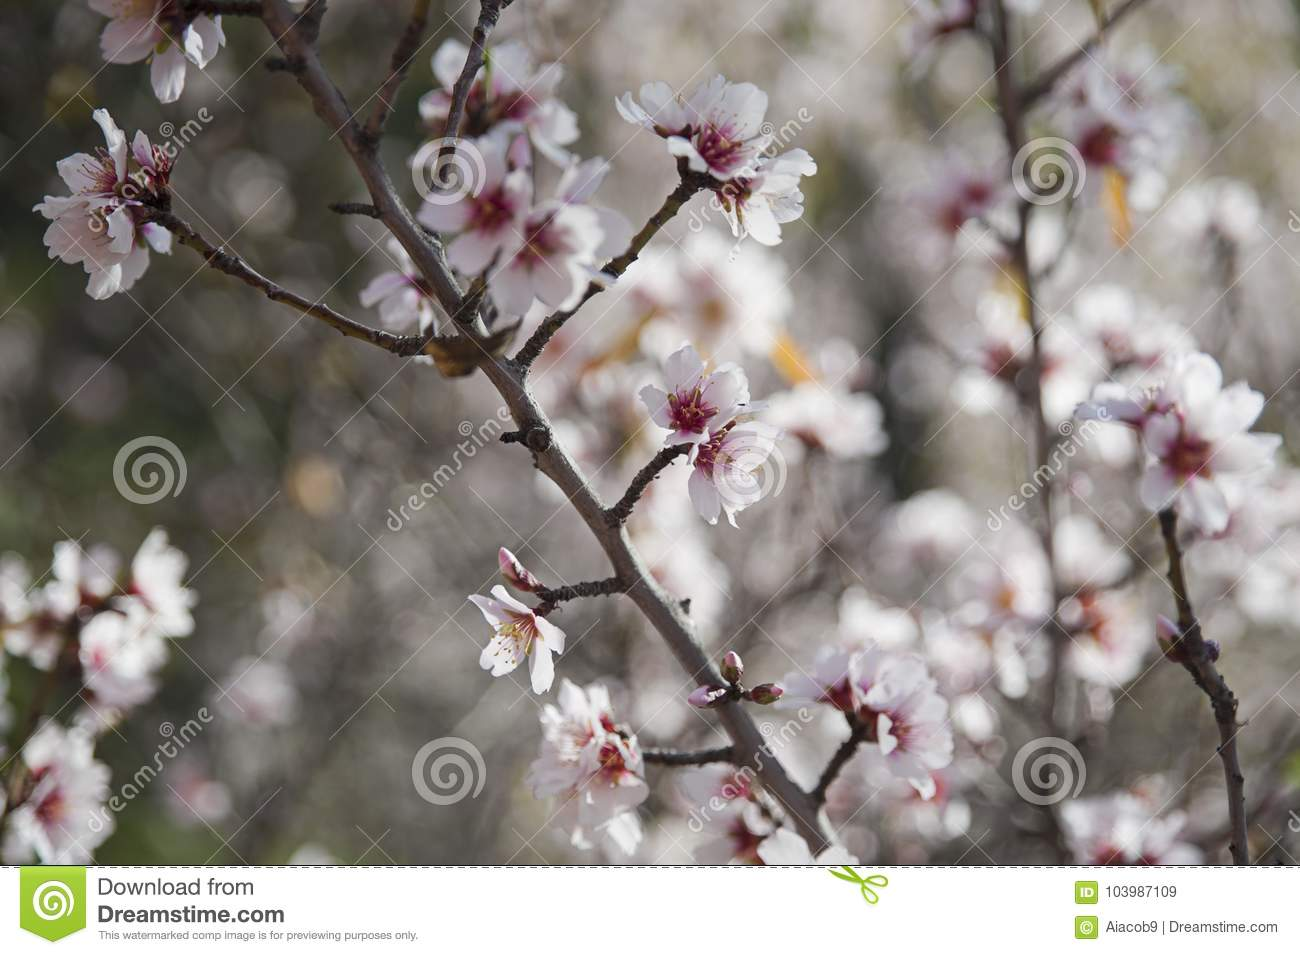 Sweet Almond Tree Blossoming Displaying Clusters Of Delicate And